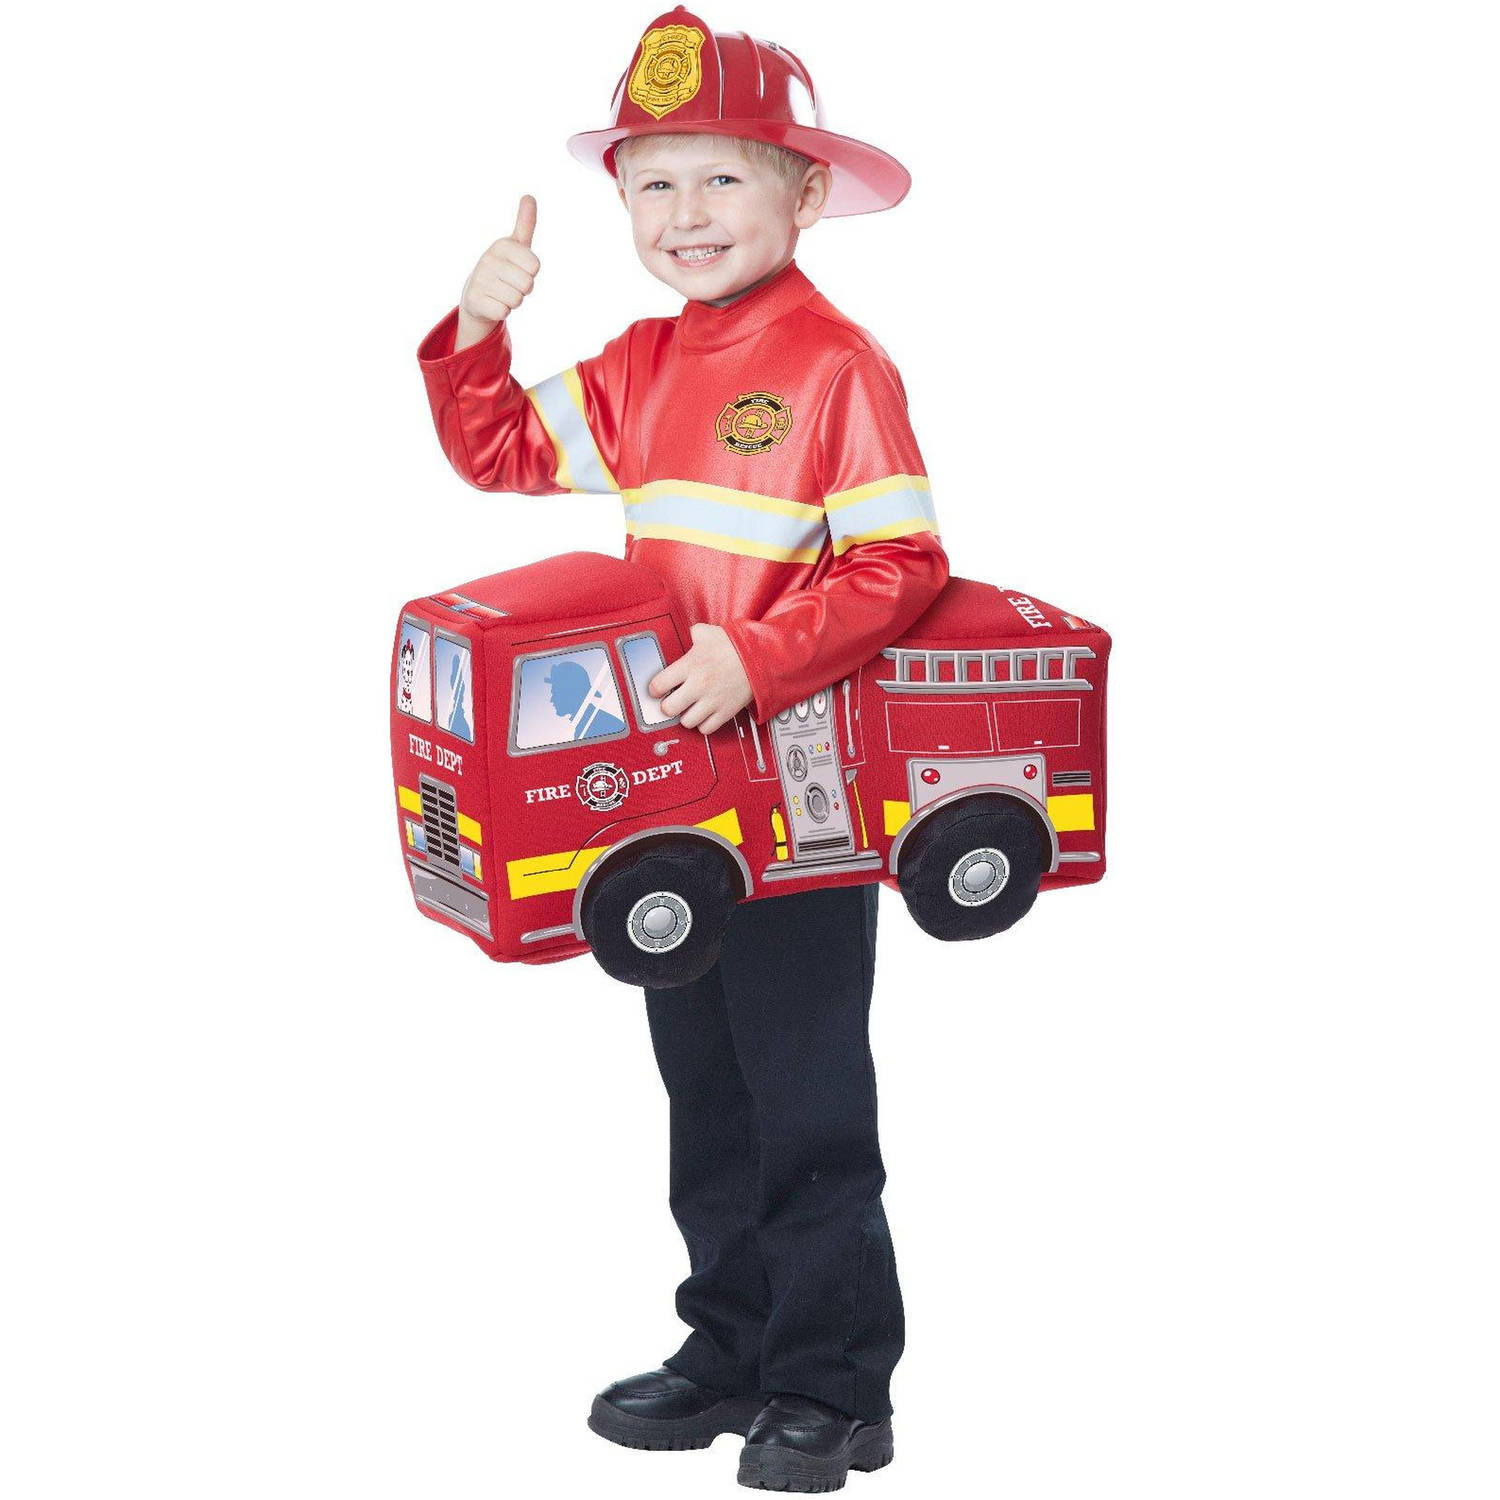 Firetruck Hero Rider Child Halloween Costume, 1 Size